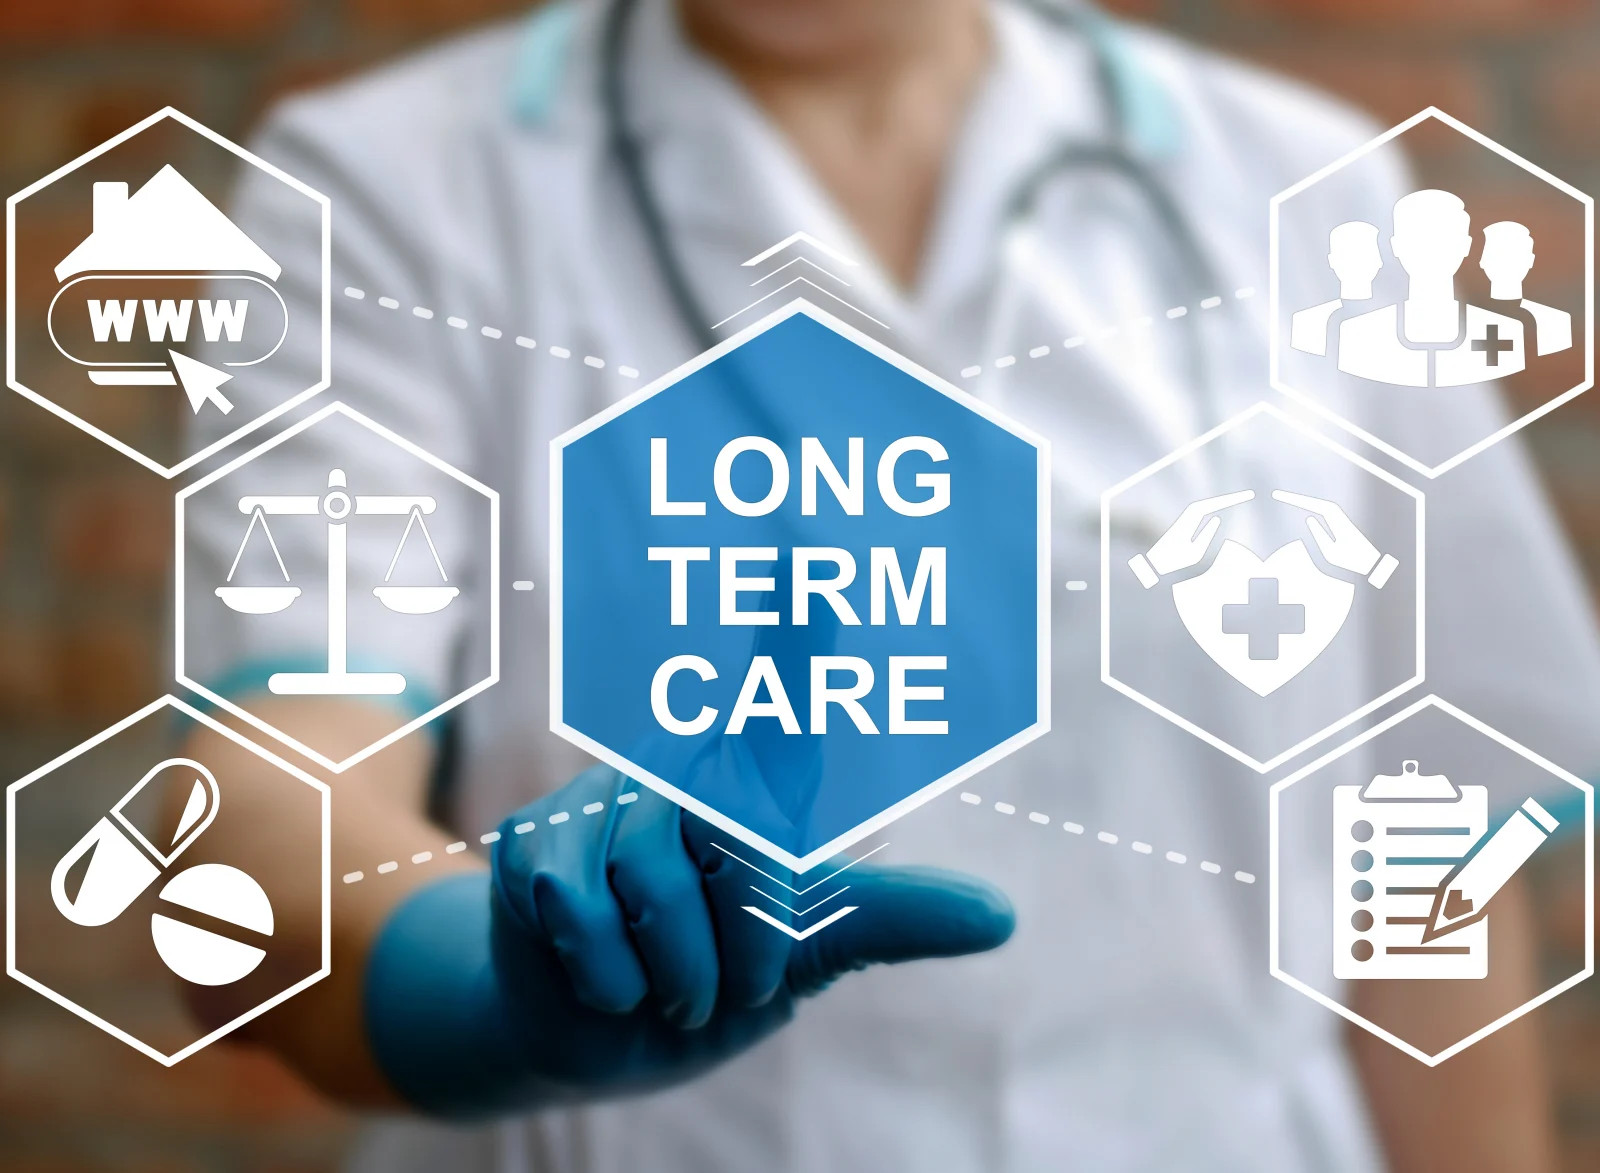 Long Term Care Stock Image